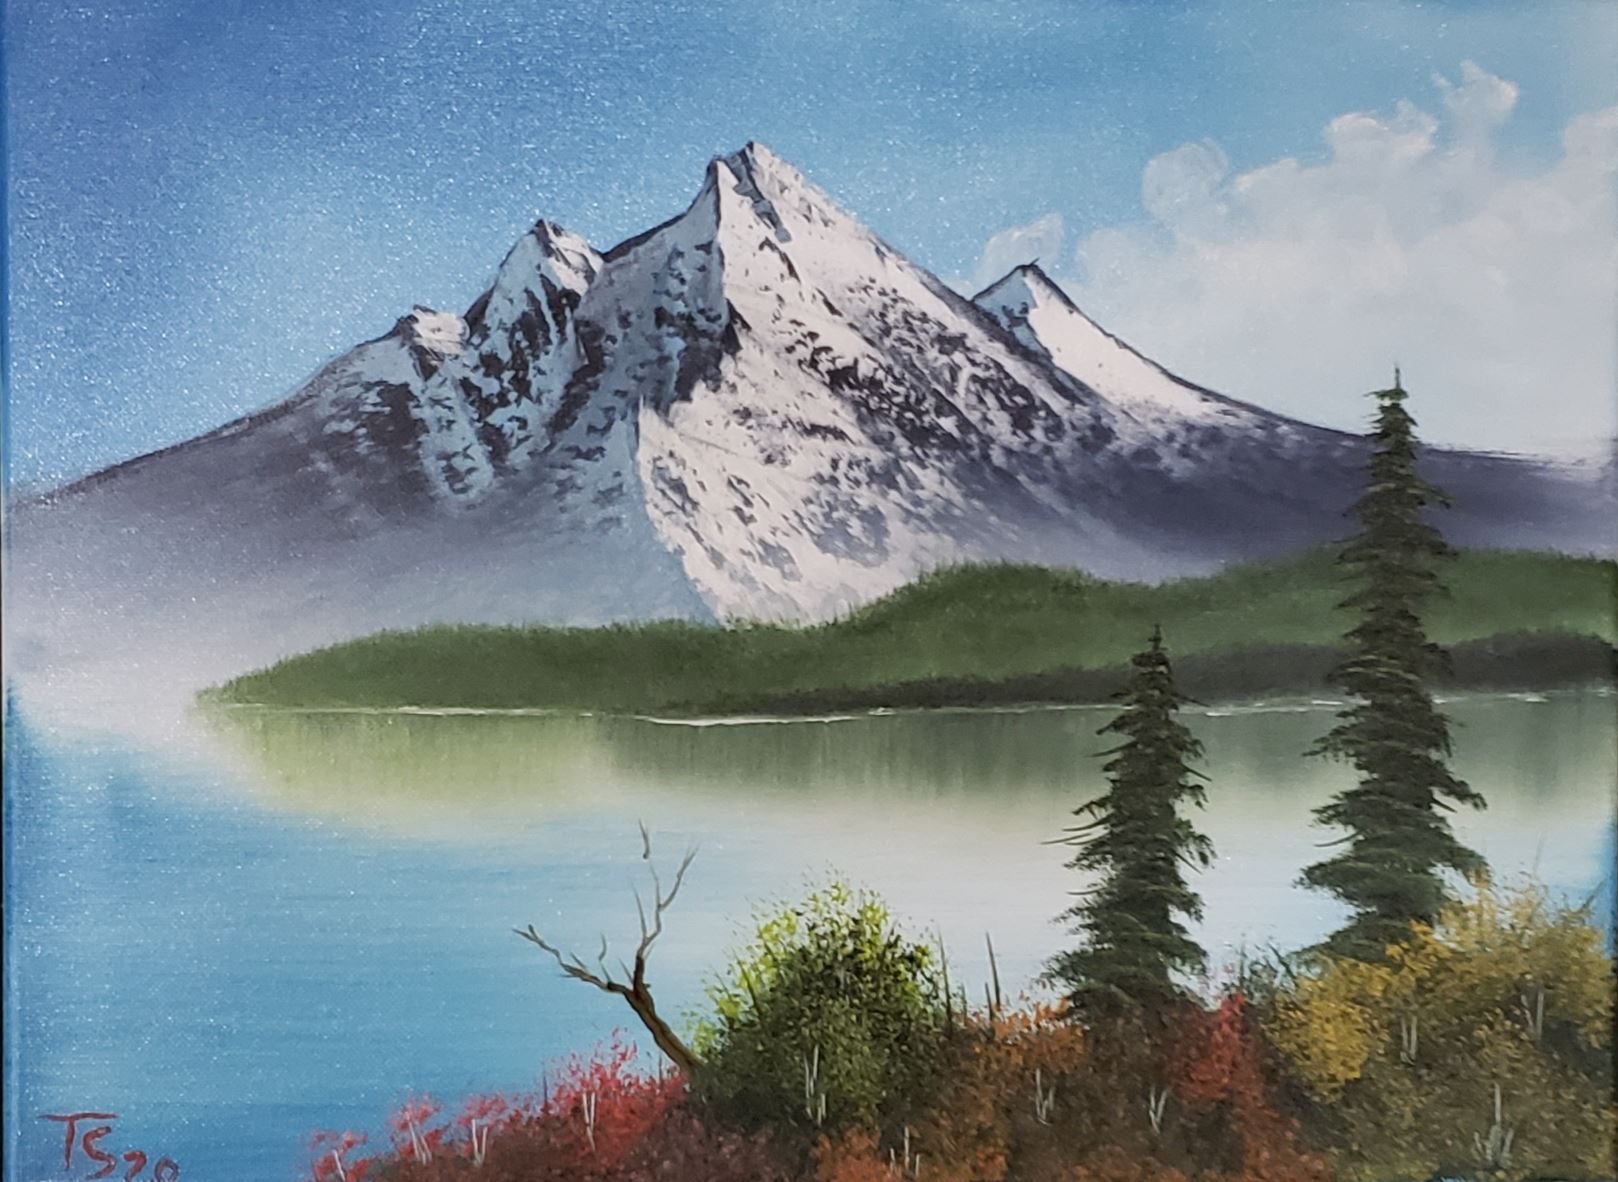 Bob Ross Painting - Mountain Landscape - Friday, August 14, 2020